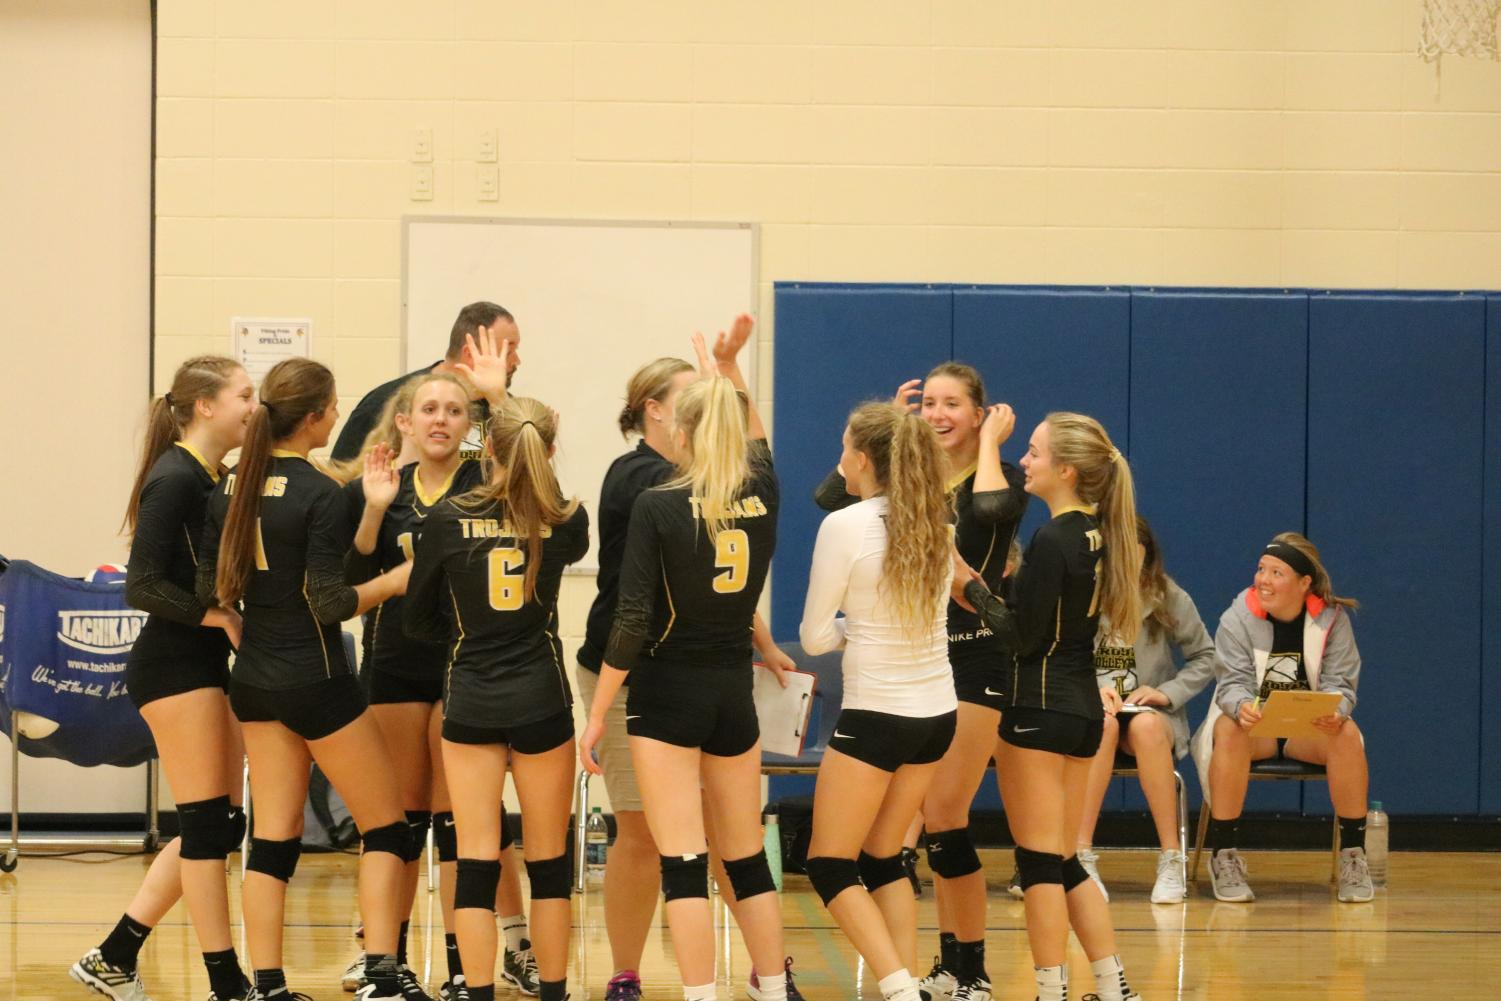 High fives are given all round by the volleyball girls before the start of a new set.